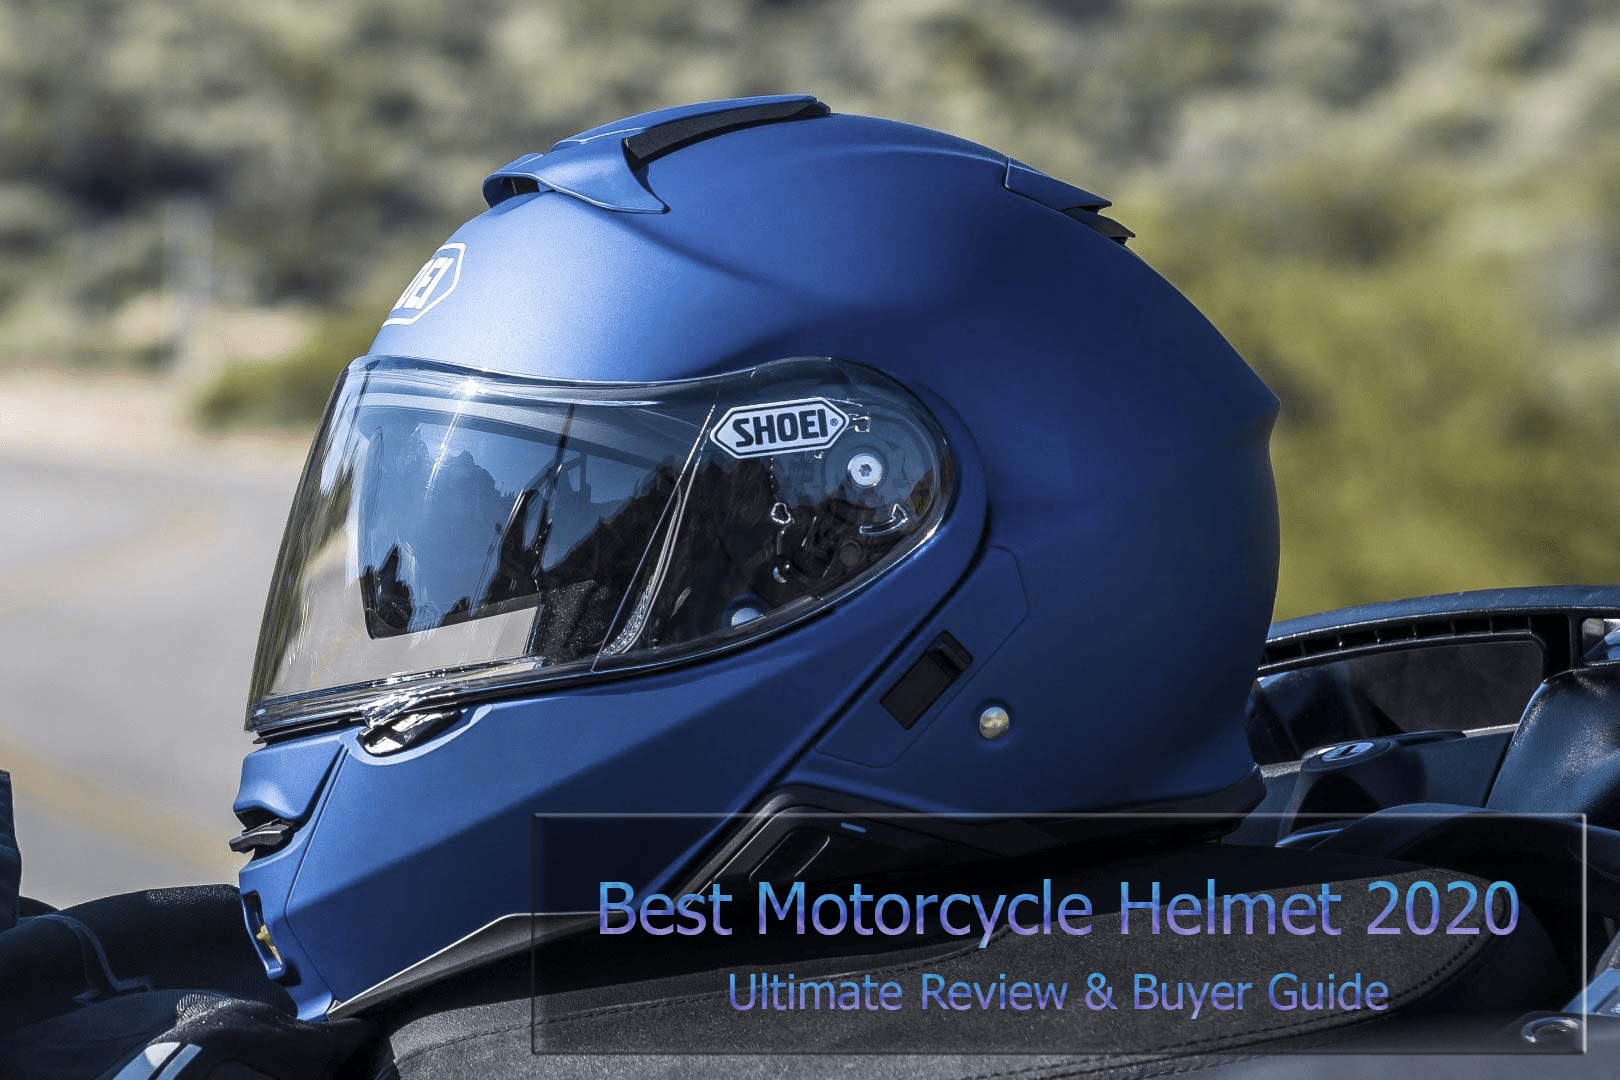 Best Motorcycle Helmet Review and Buyer Guide 2020